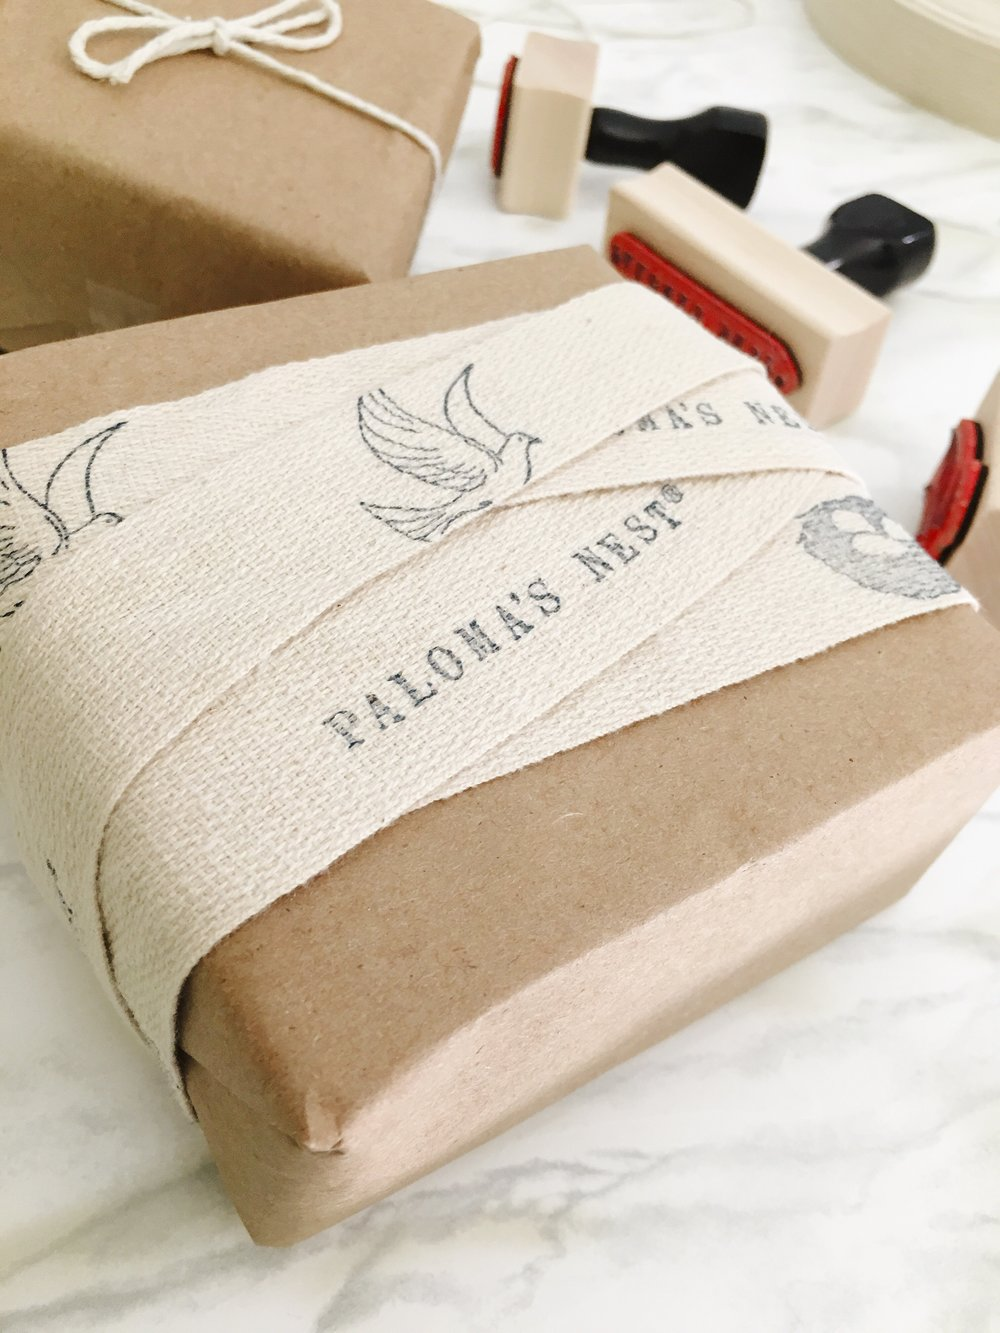 Creatiate Rubber Stamps Pretty Packaging Project 6.jpg